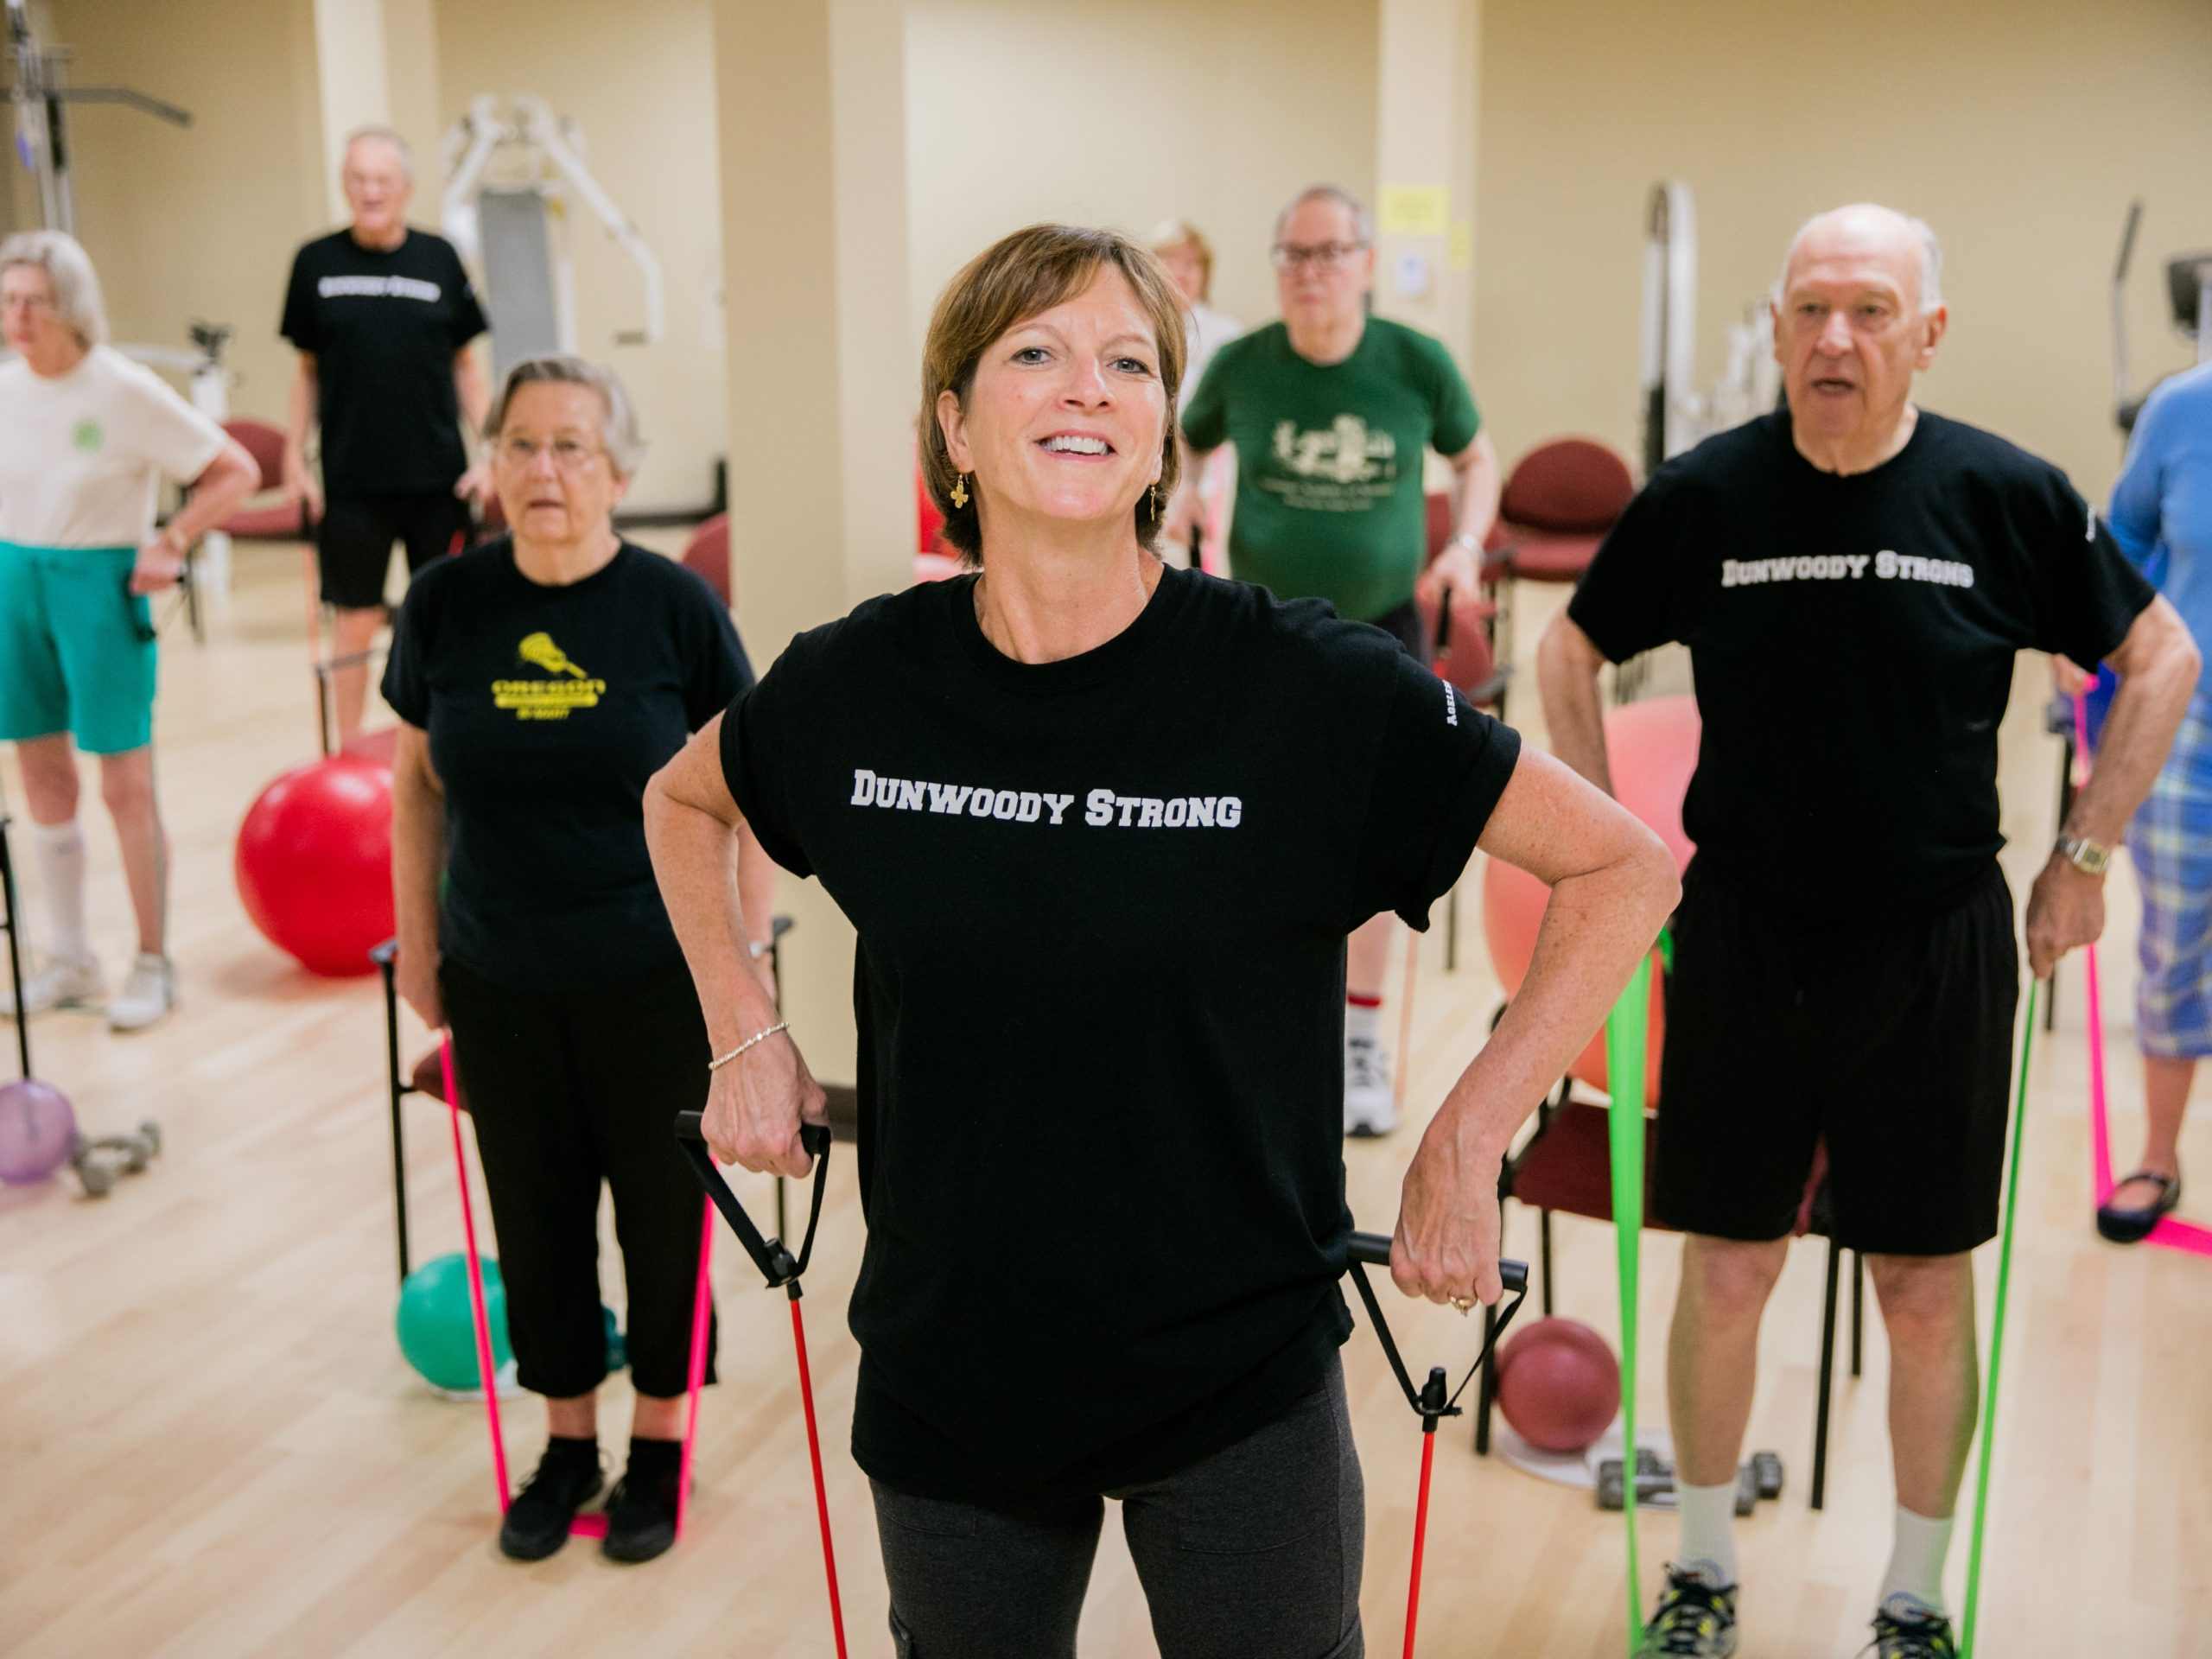 Dunwoody Village Offers Residents Opportunities to Pursue Wellness of the Mind, Body, Spirit